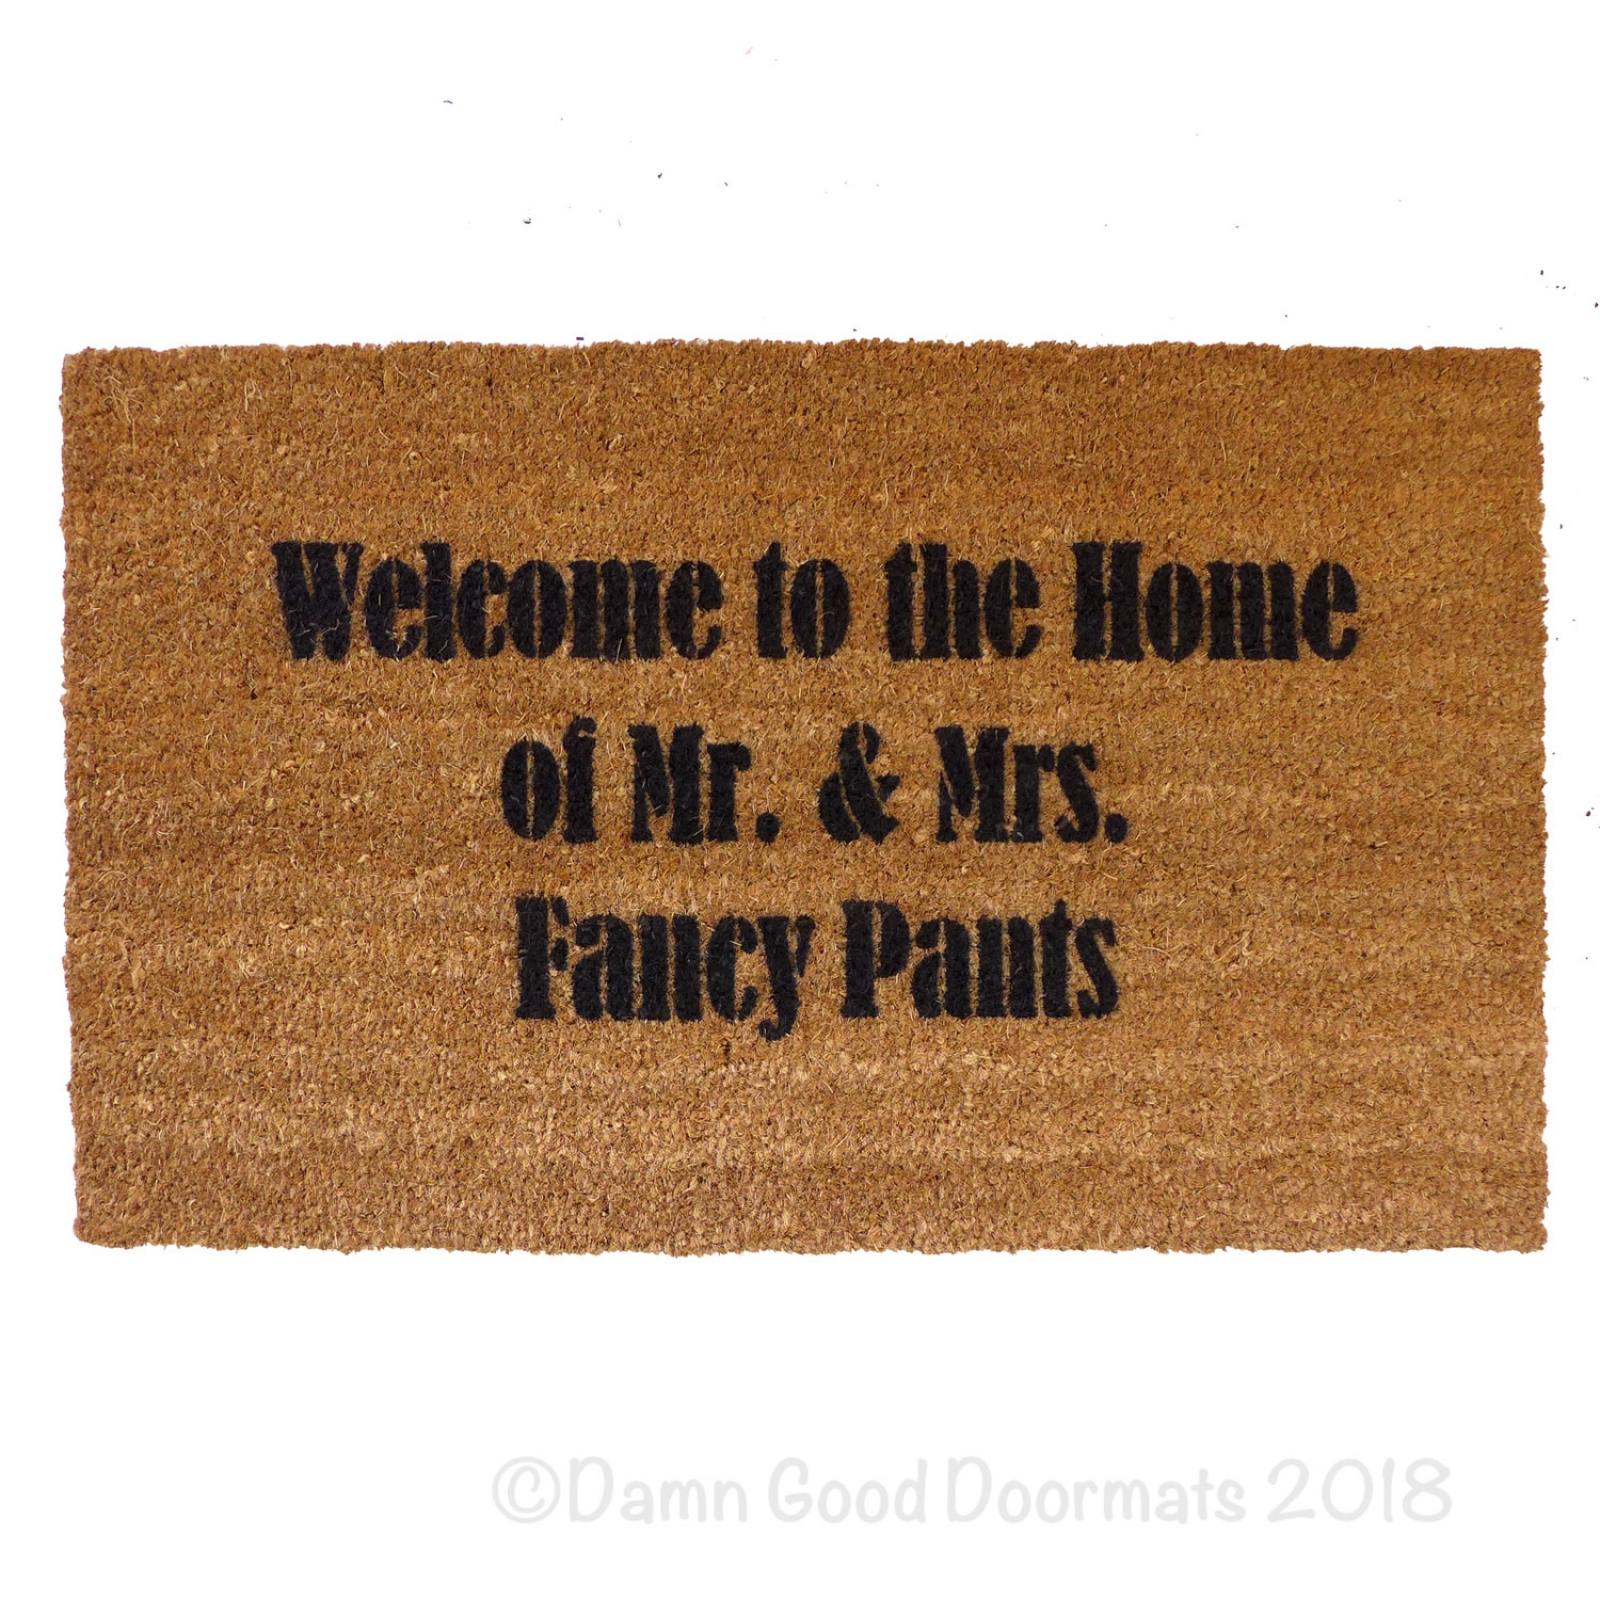 Fancy Pants Parade Joco To The Home Of Mr Amp Mrs Fancy